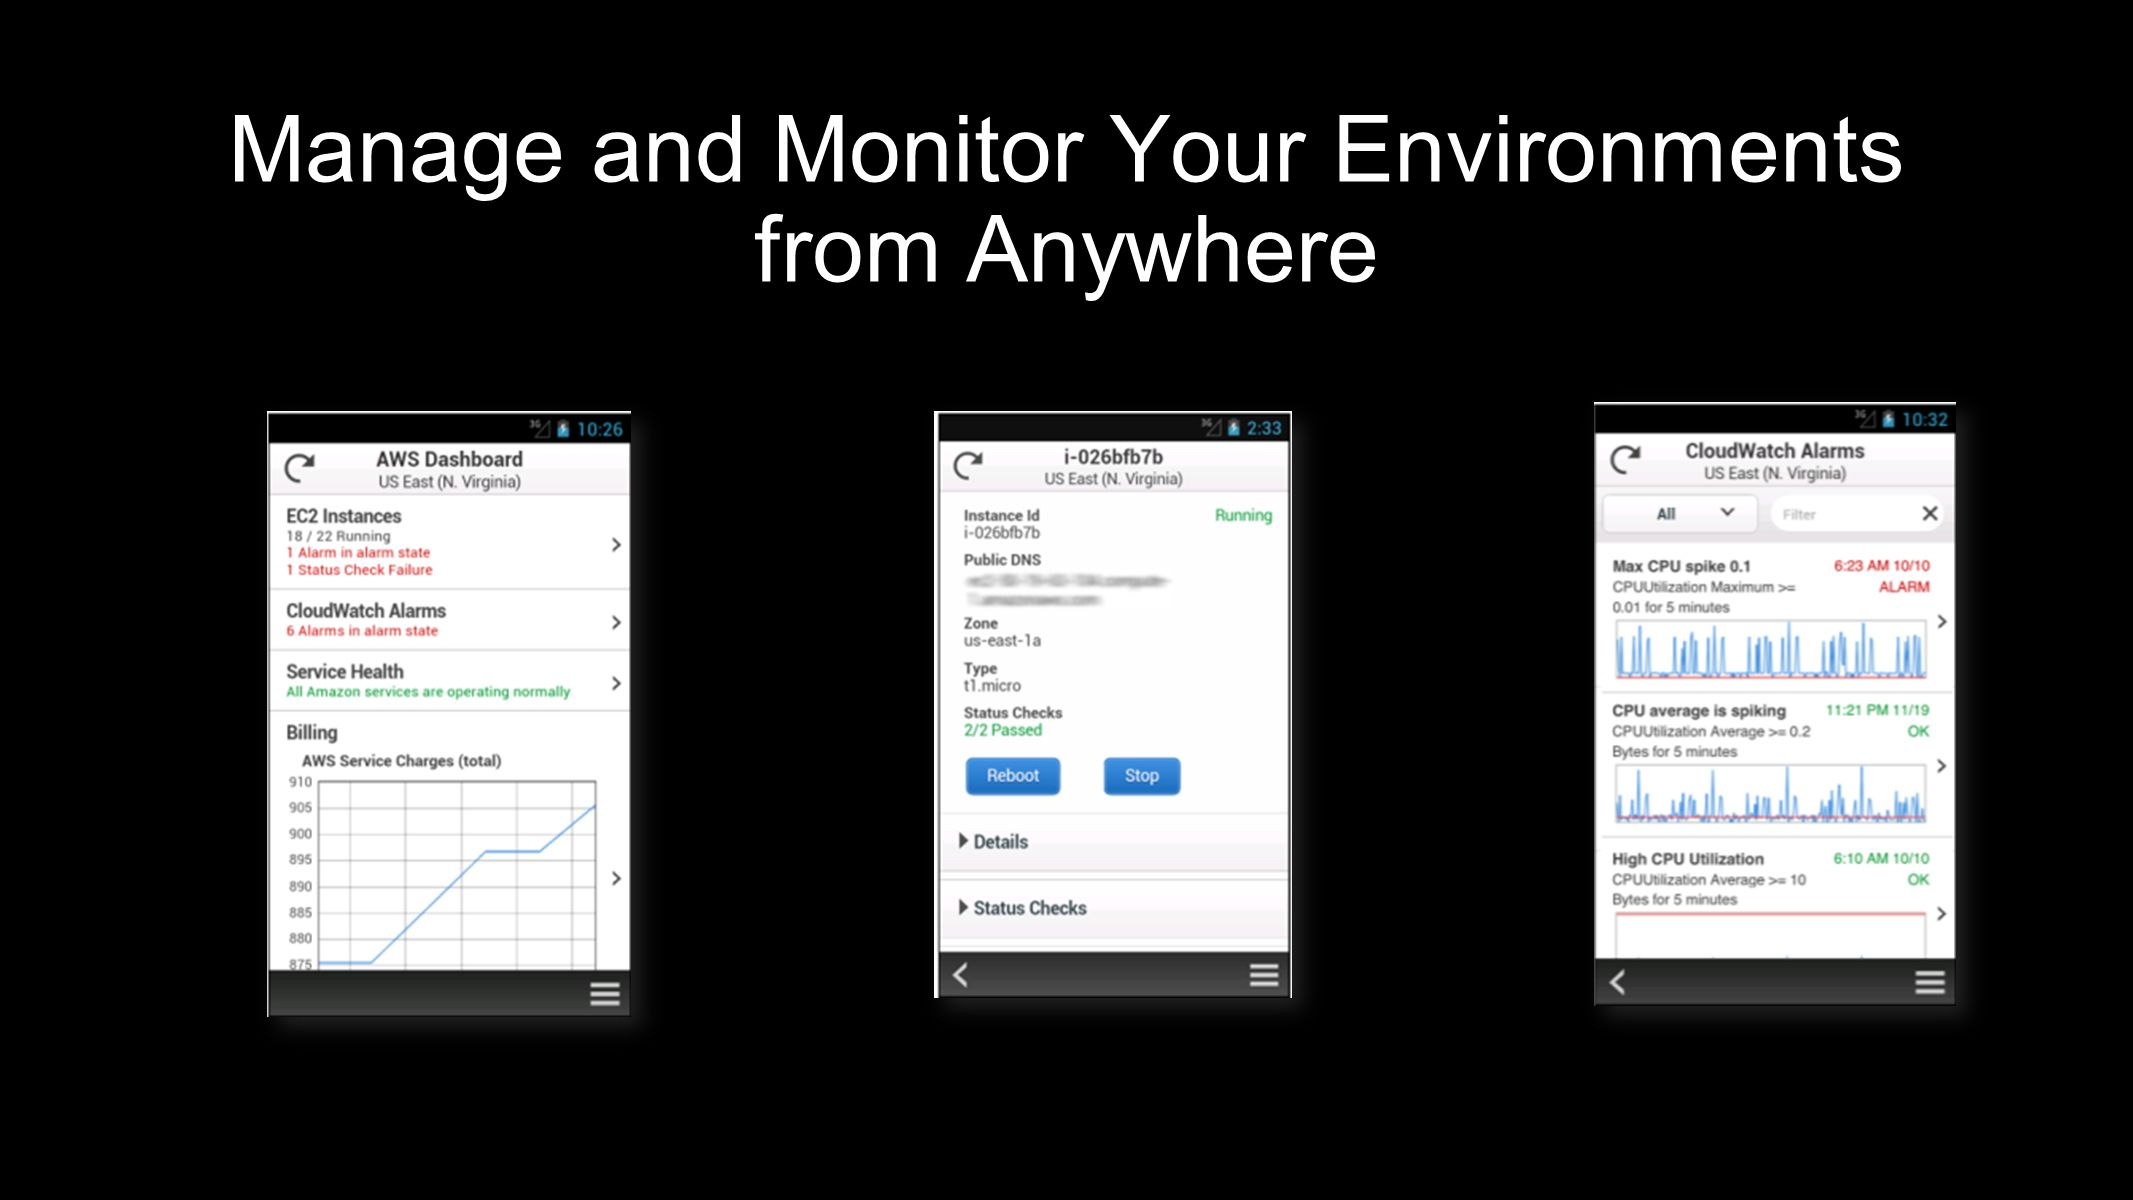 Manage and Monitor Your Environments from Anywhere